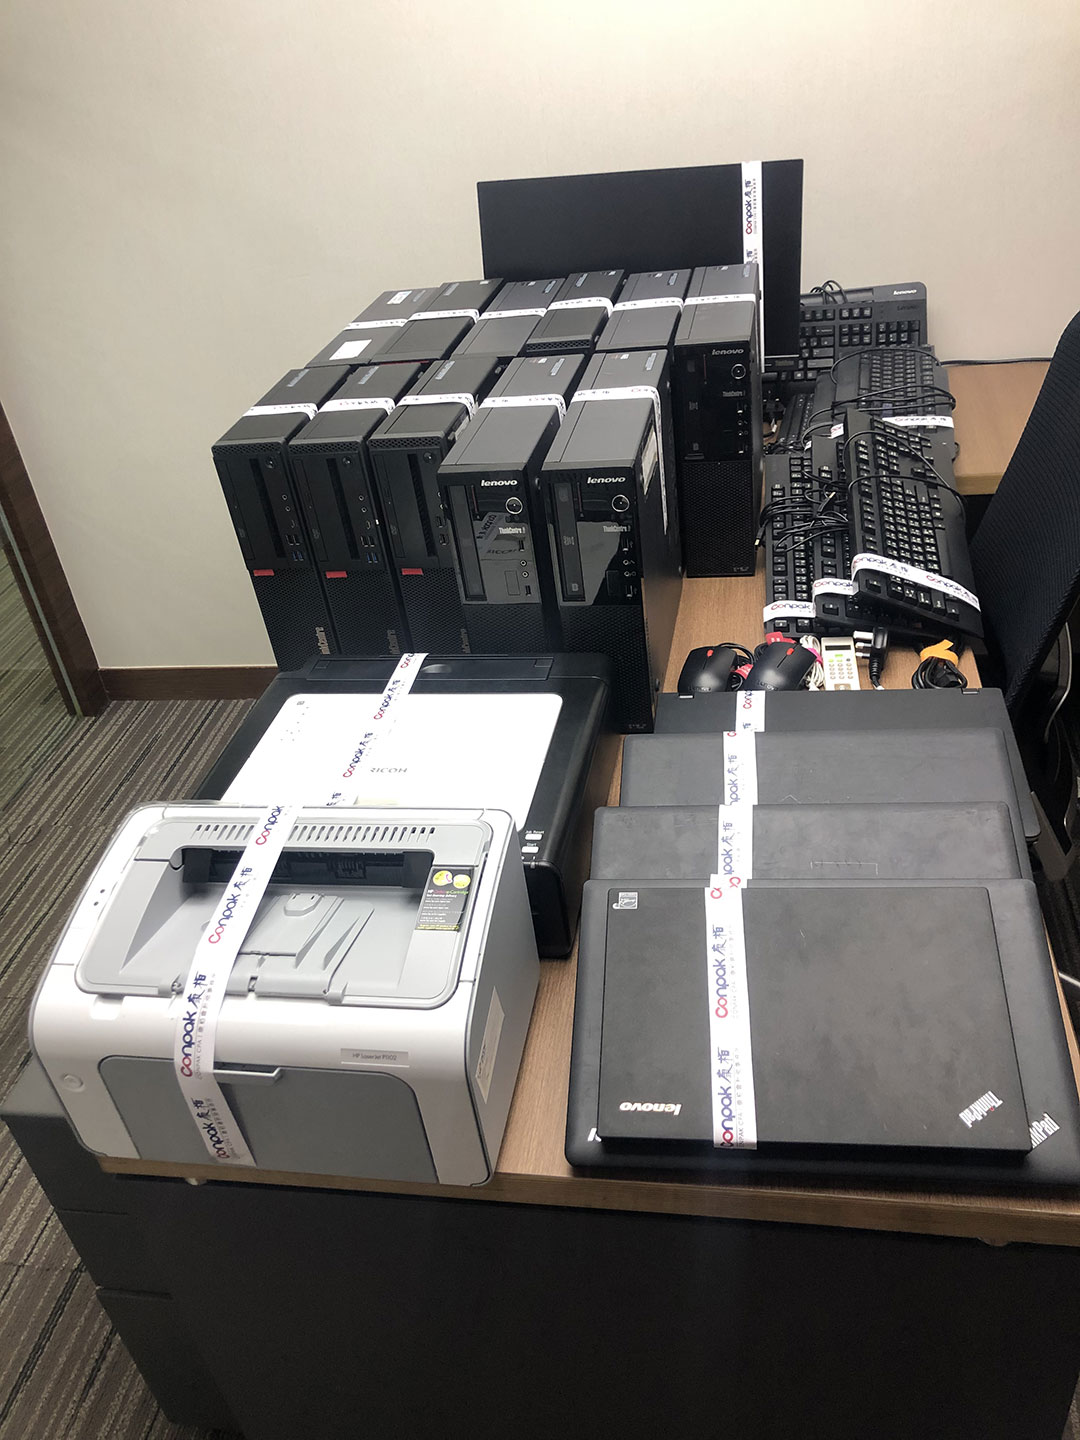 11th Round of Donation of Idle Computers